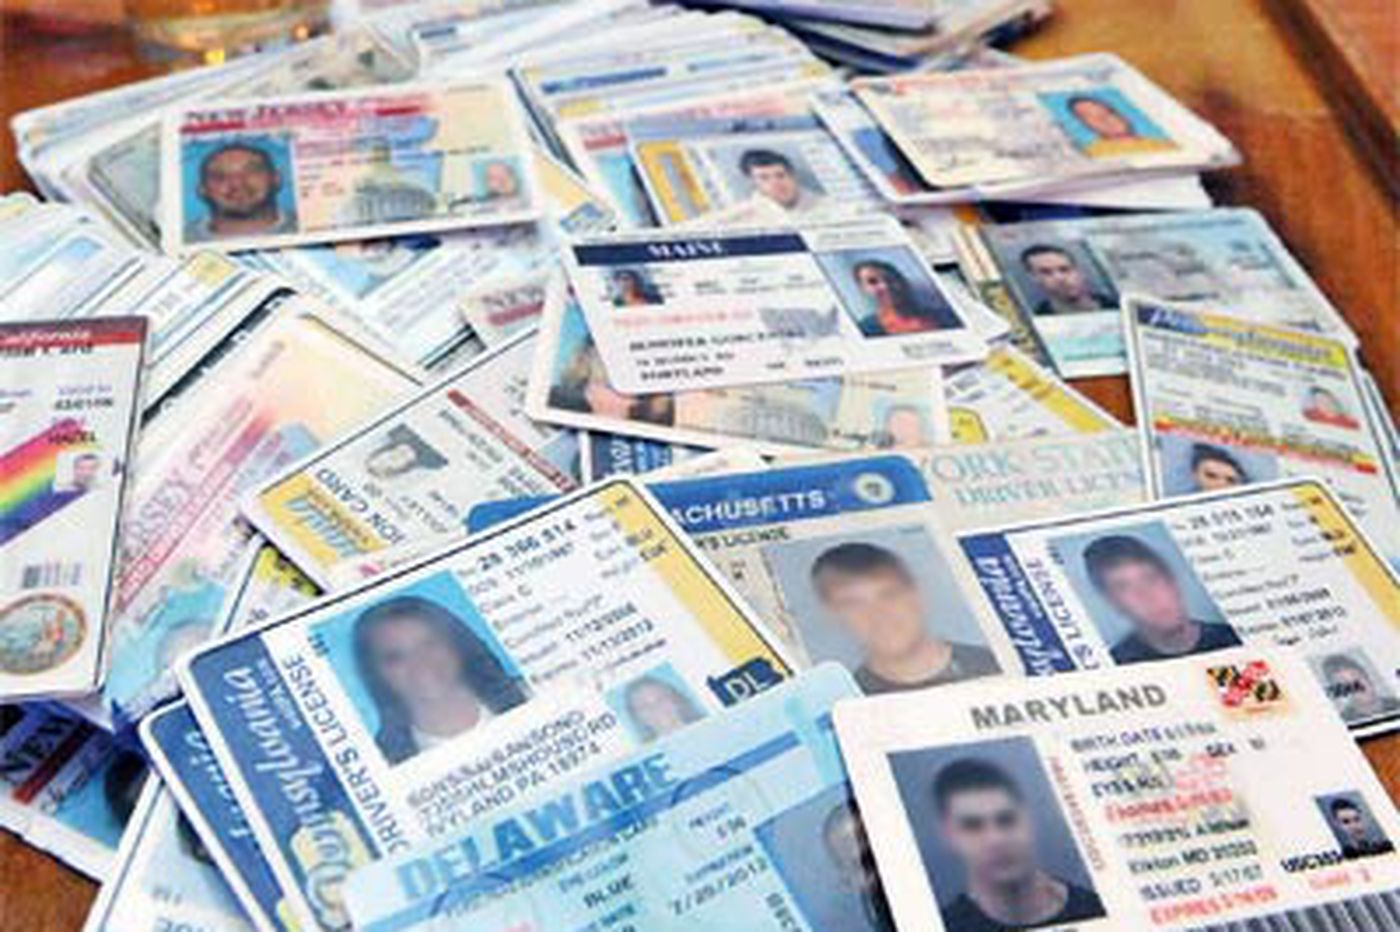 Fake driver's licenses tougher and tougher to ID